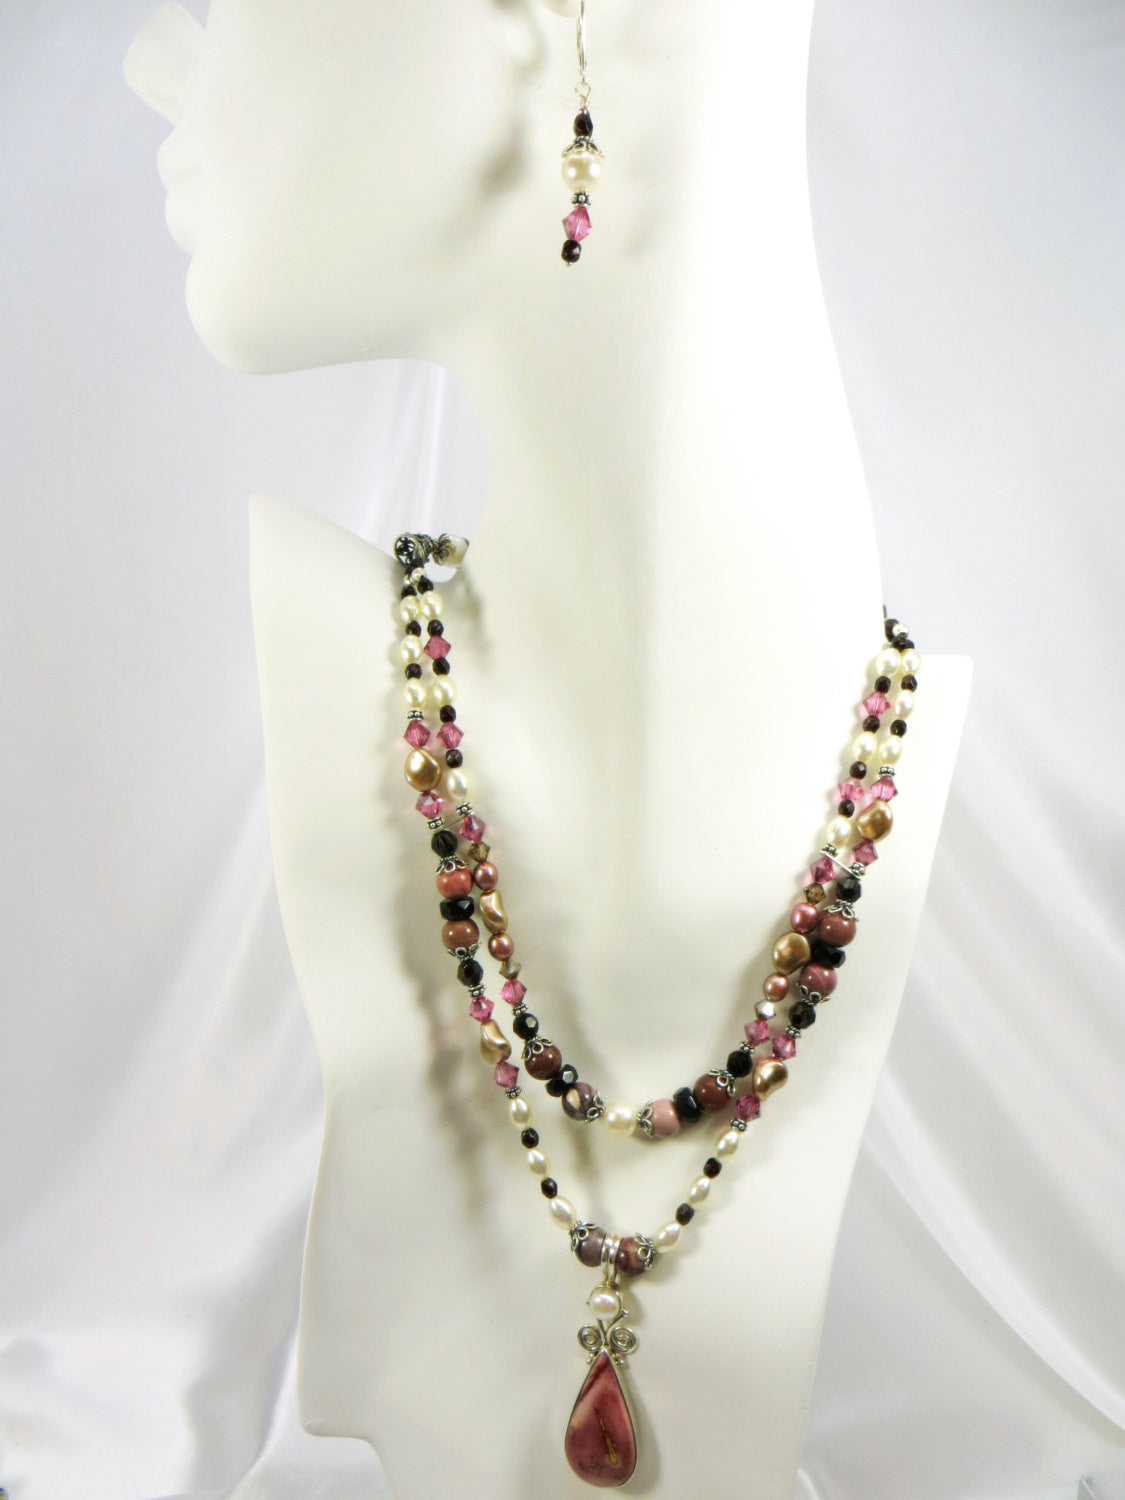 Necklace and Earring Set in Dusty Pink Rose Mookalite Stone, Freshwater Pearls and Swarovski all Sterling Silver - Odyssey Creations